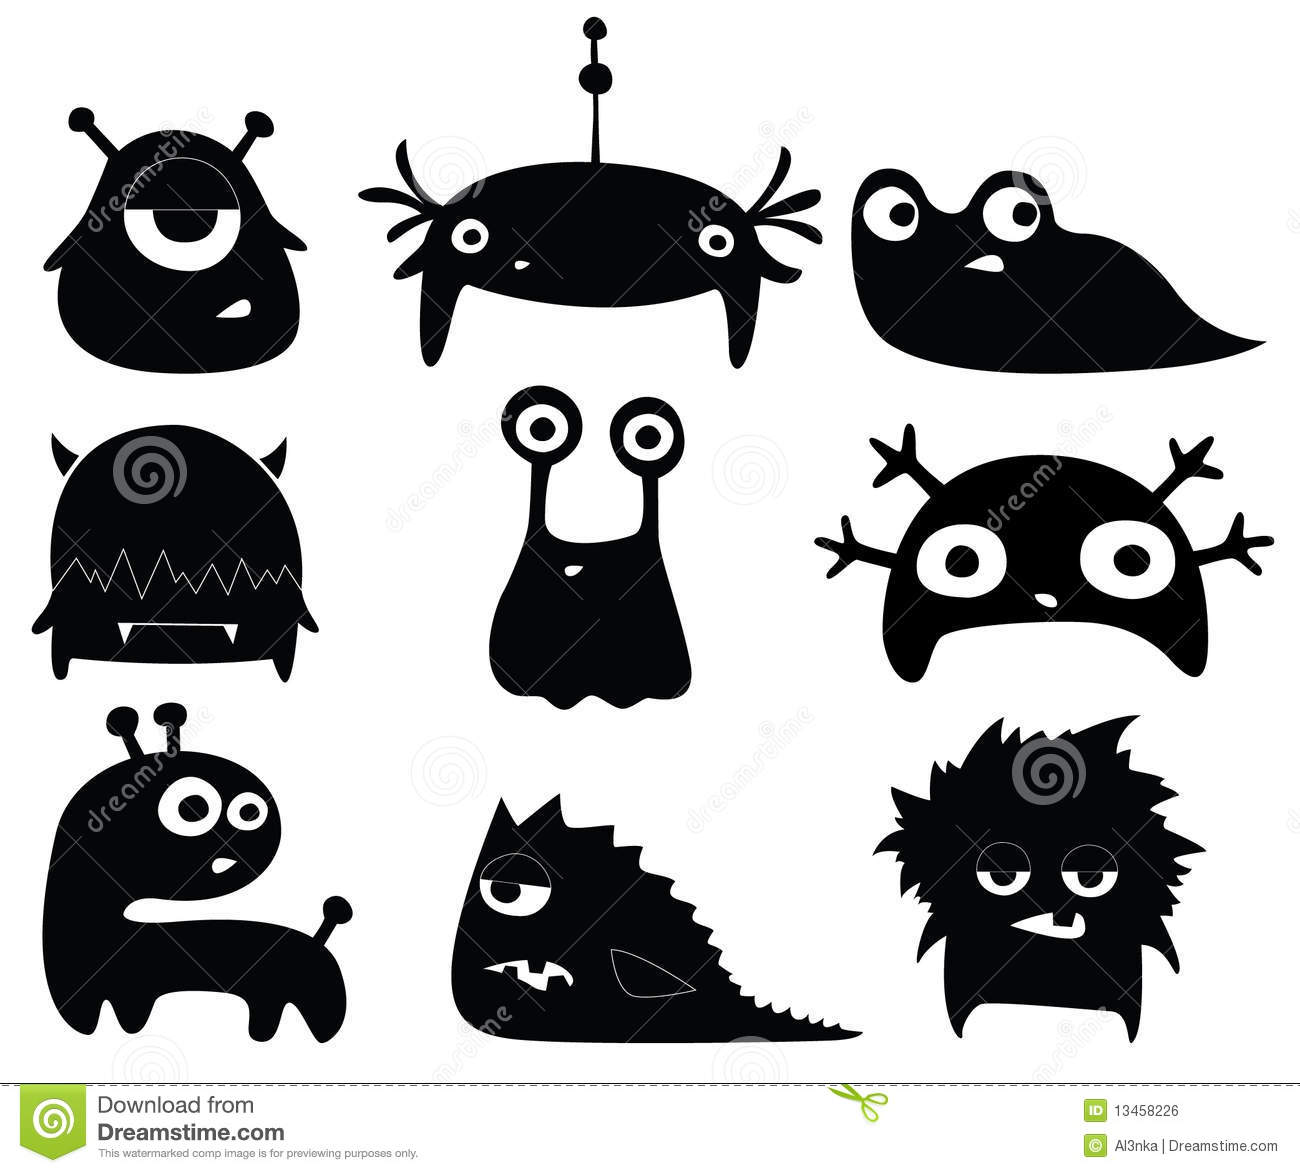 Cute Monsters Royalty Free Stock Image - Image: 13458226